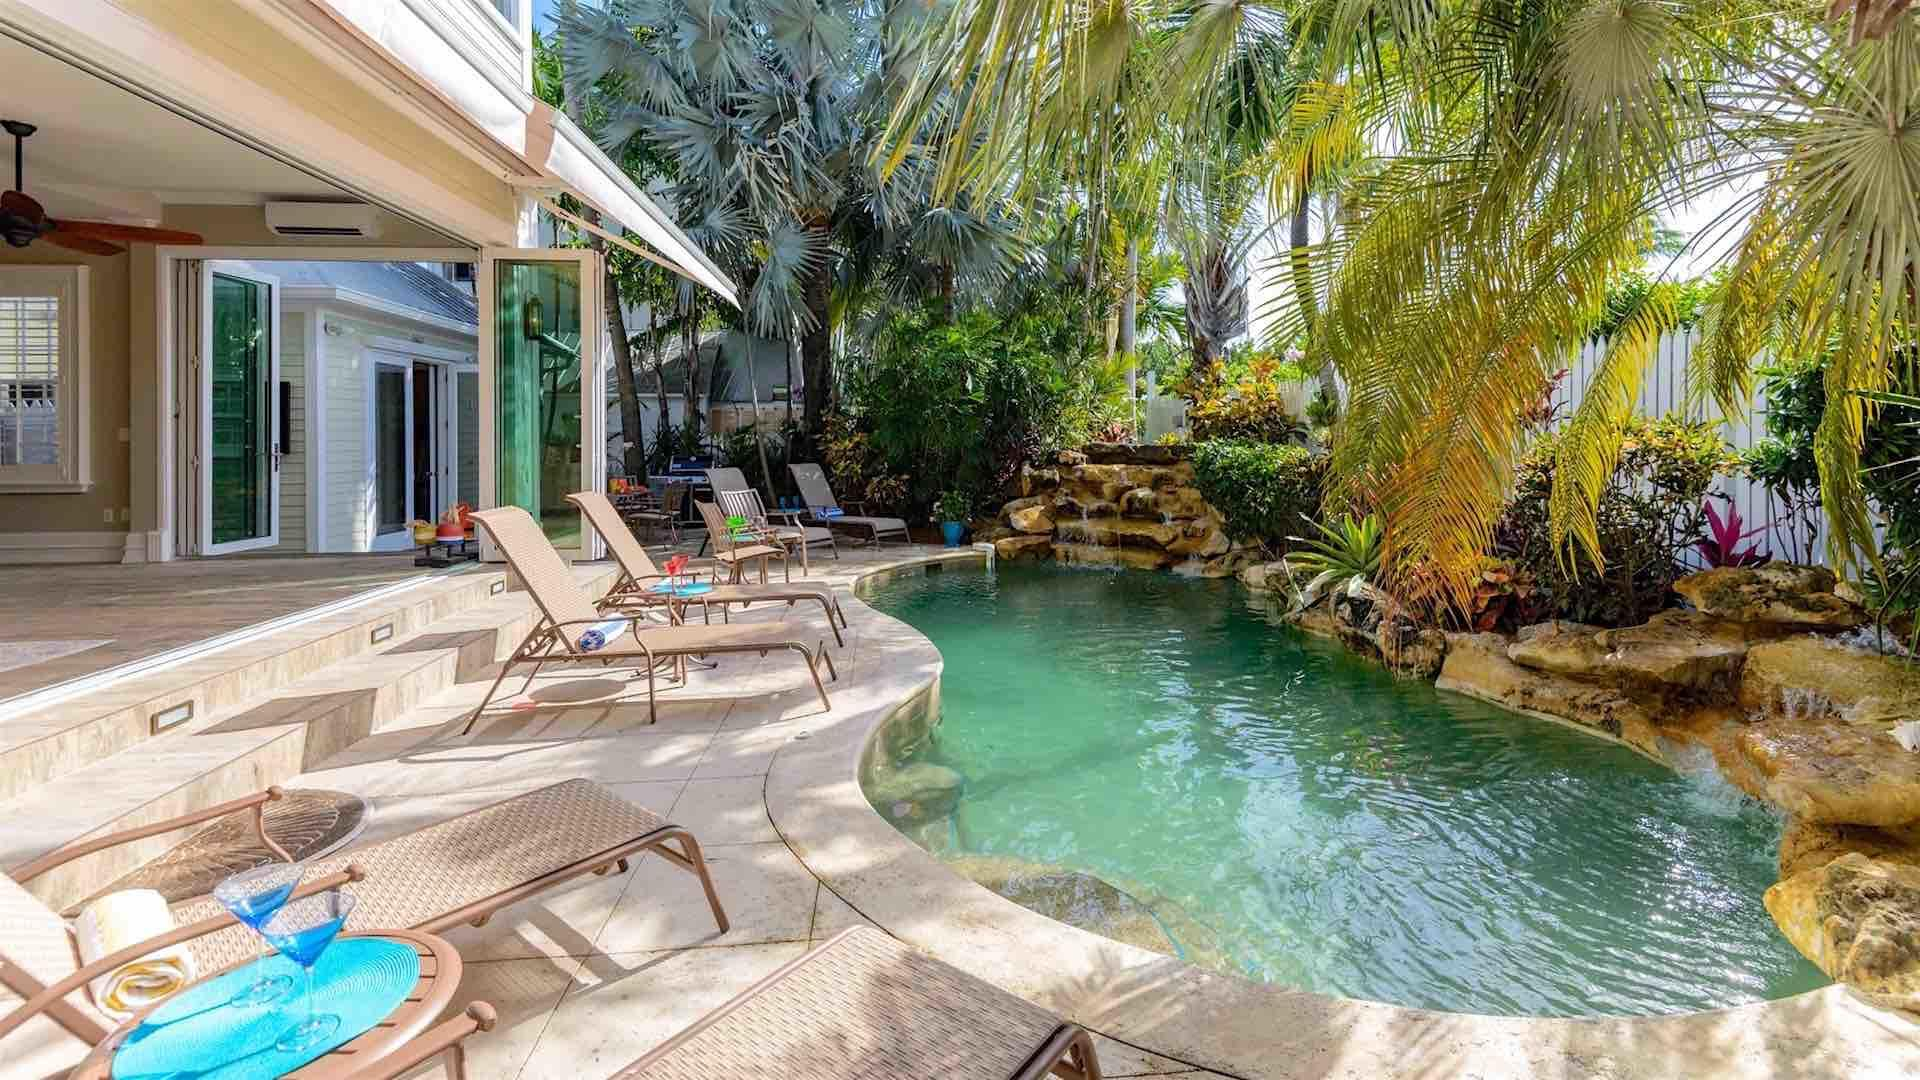 The pool has two waterfalls & built-in seating. There is plenty of seating...